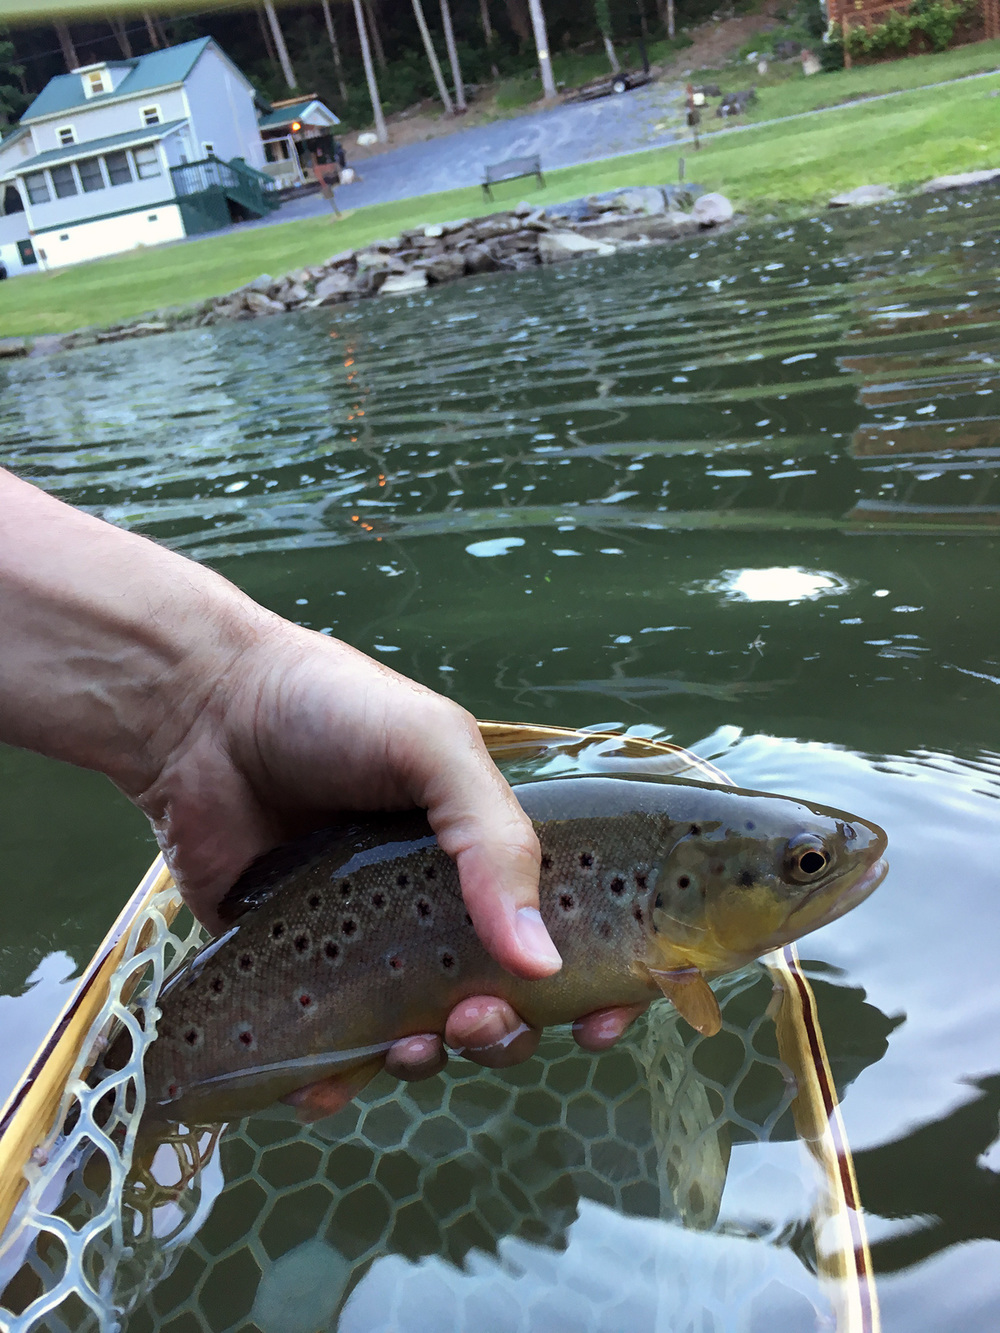 One of the rising trout I fooled with a Rusty Spinner on Penns Creek.